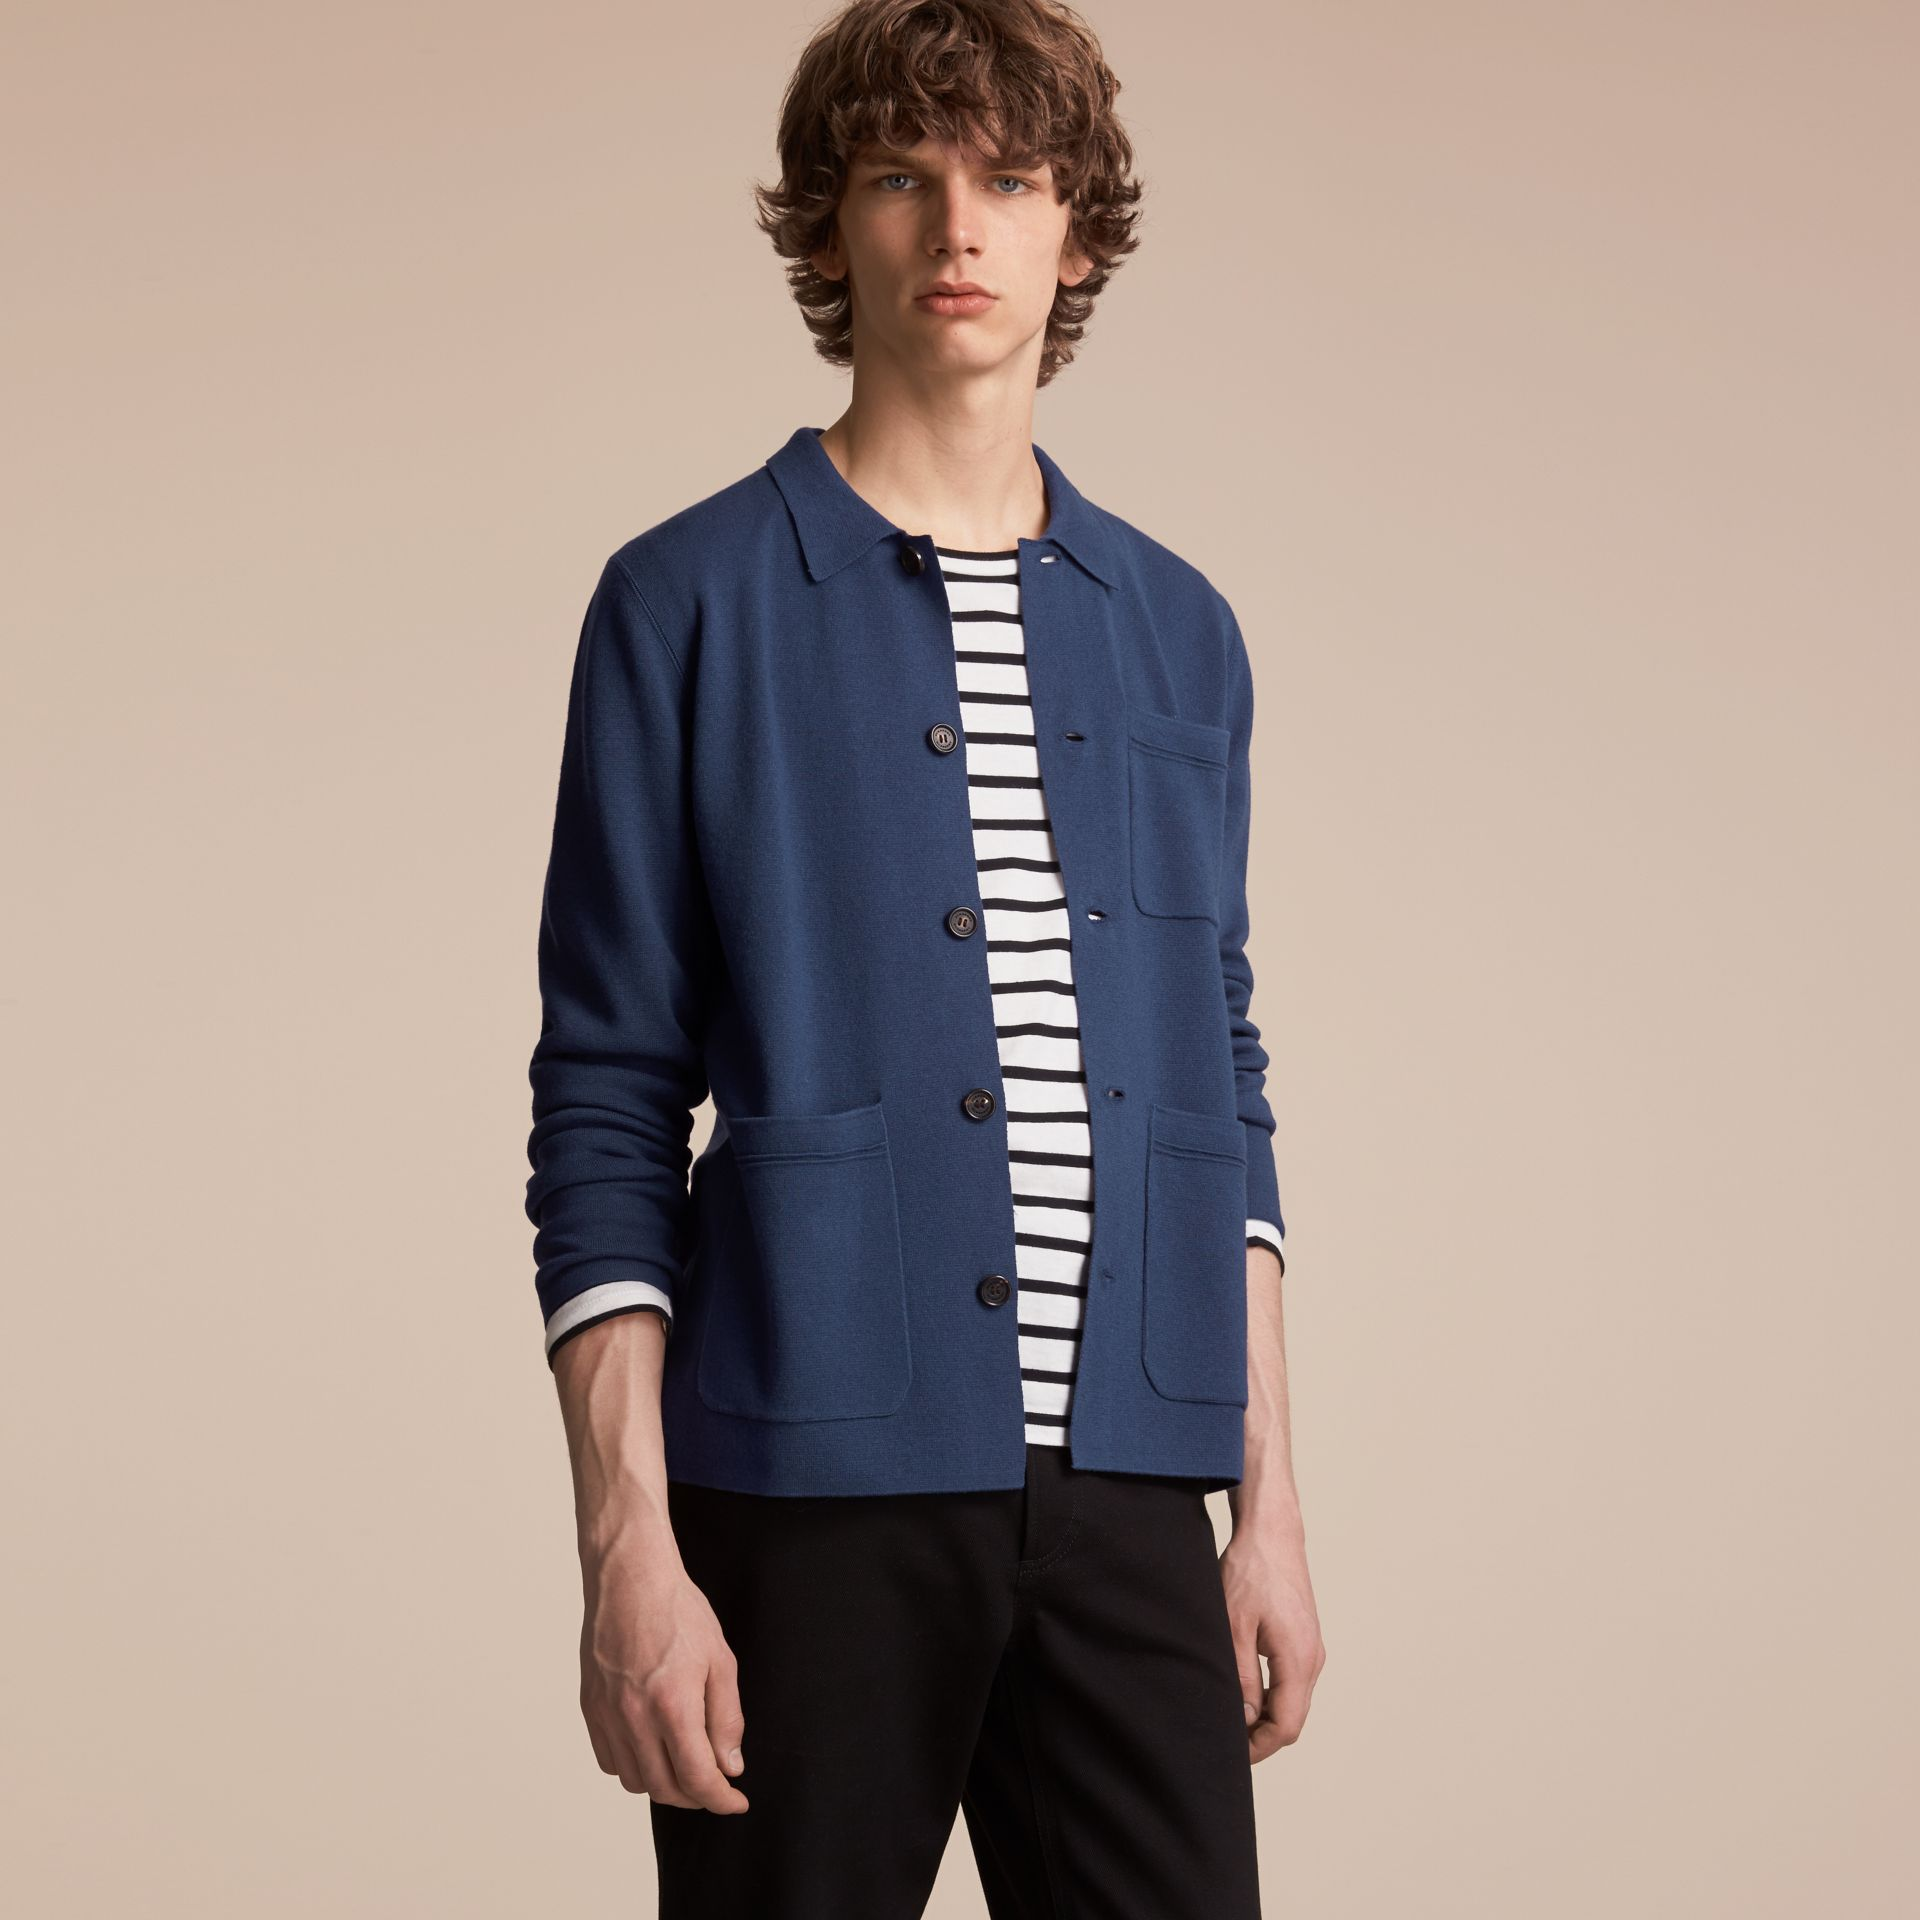 Knitted Cashmere Cotton Workwear Jacket in Steel Blue - Men | Burberry - gallery image 6